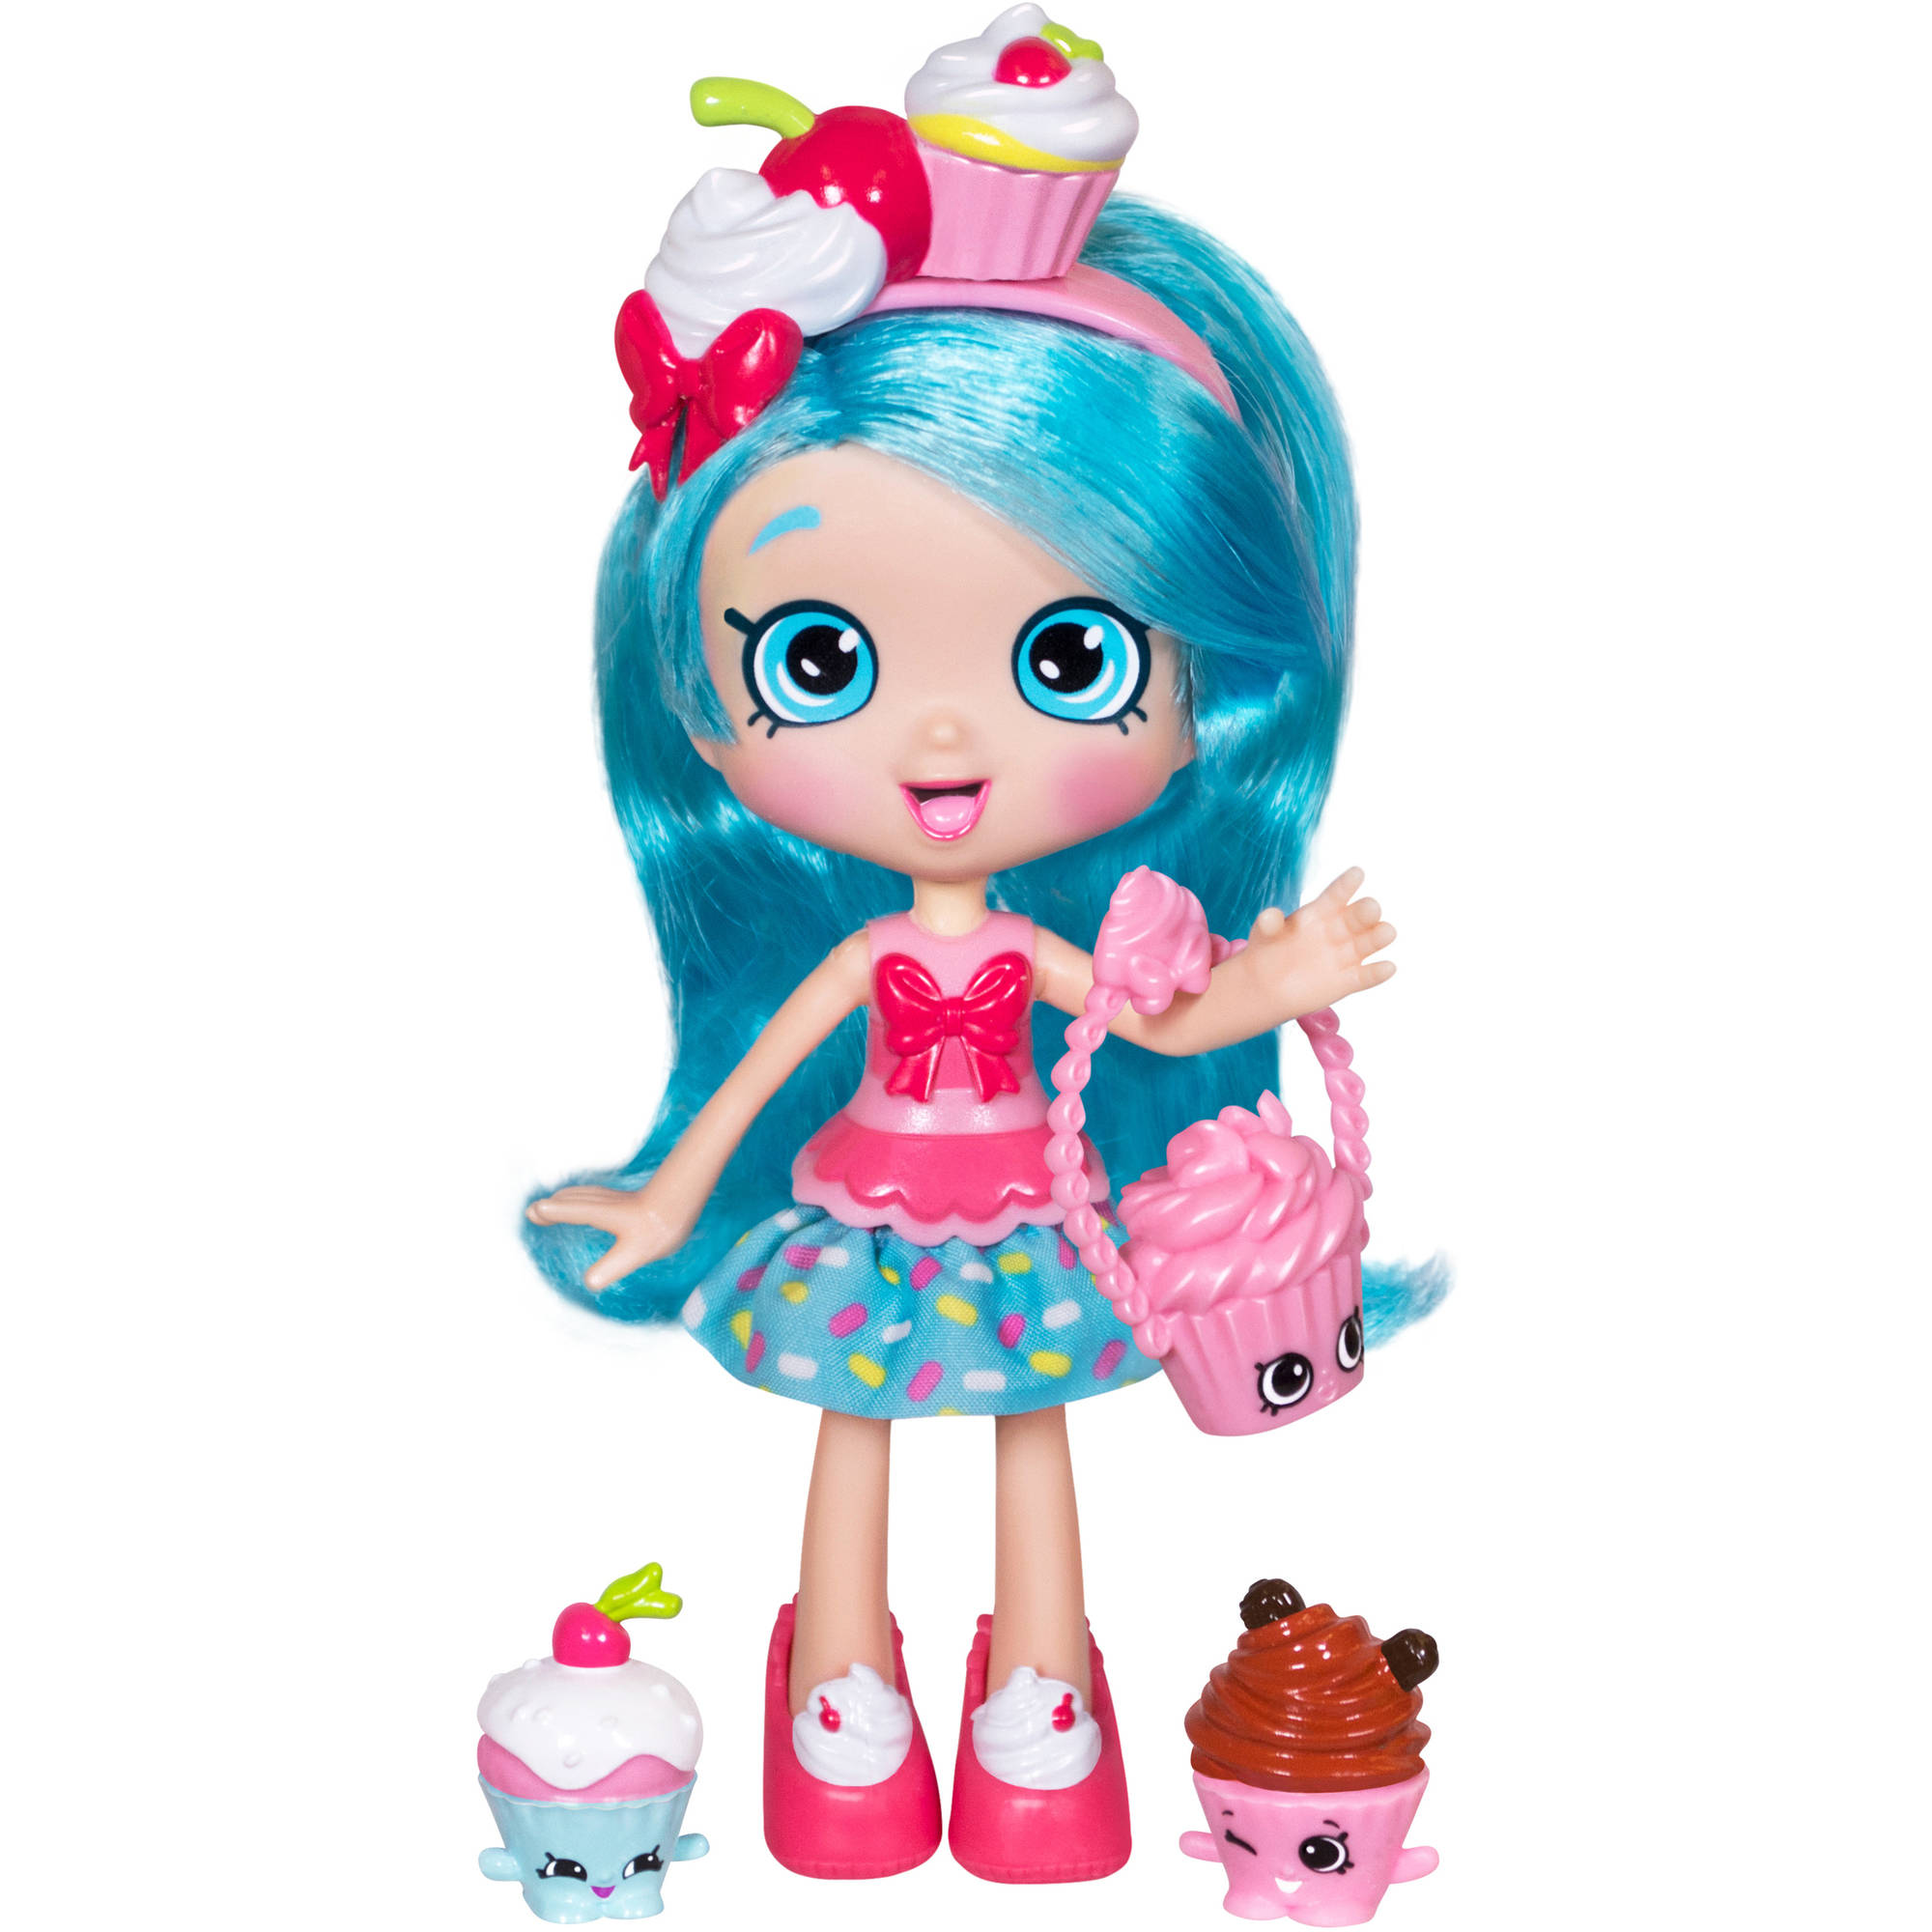 Shopkins Shoppies S1 Doll Pack, Jessicake